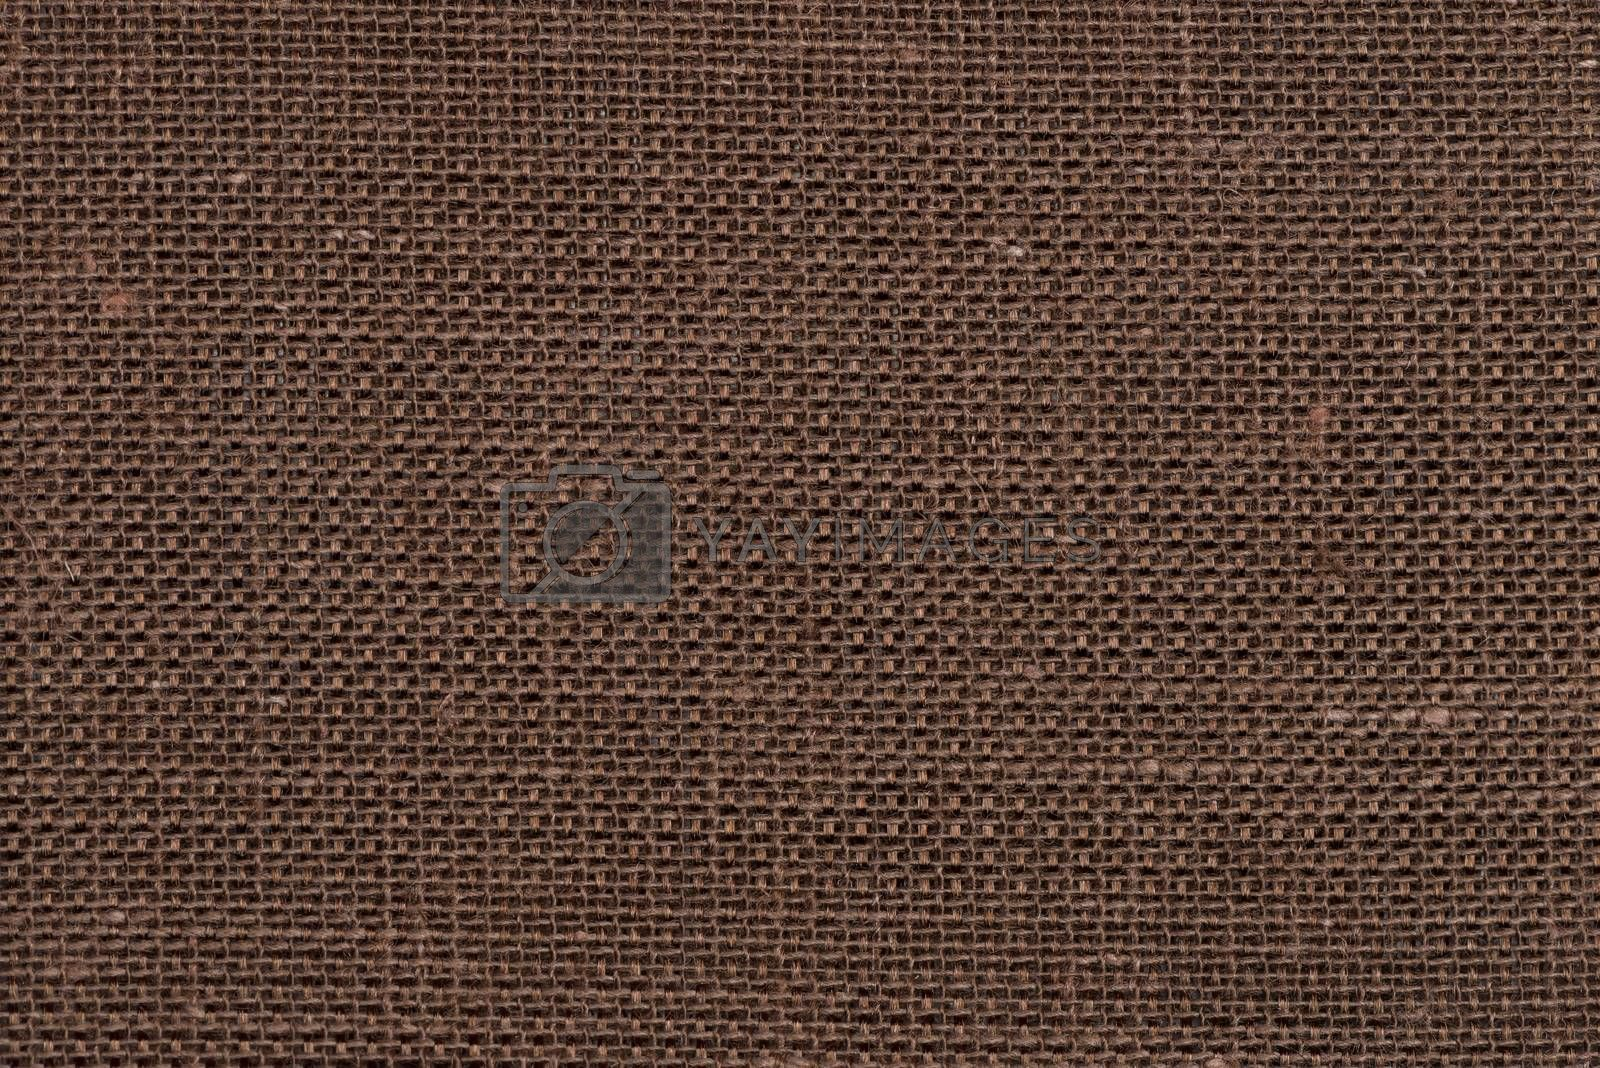 Brown fabric texture by homydesign